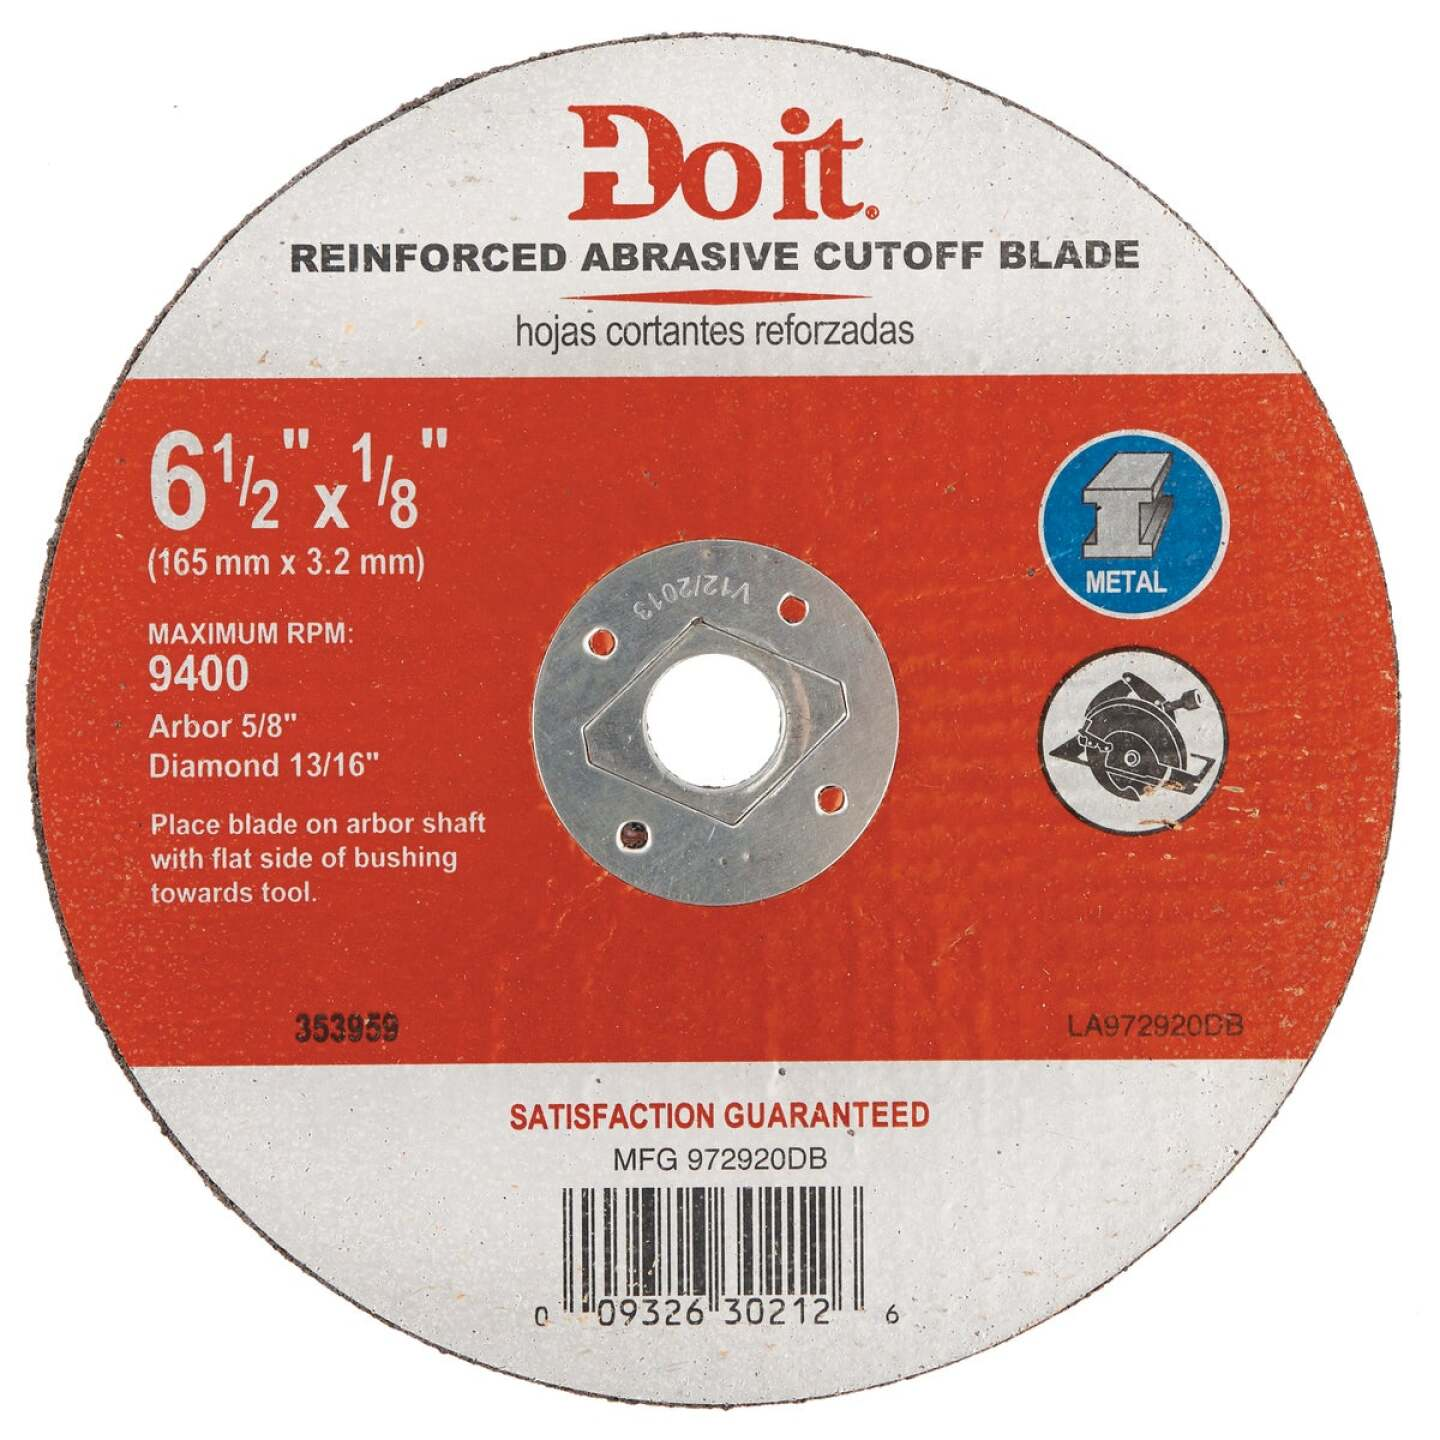 Do it Type 1 6-1/2 In. x 1/8 In. x 5/8 In. Metal Cut-Off Wheel Image 1